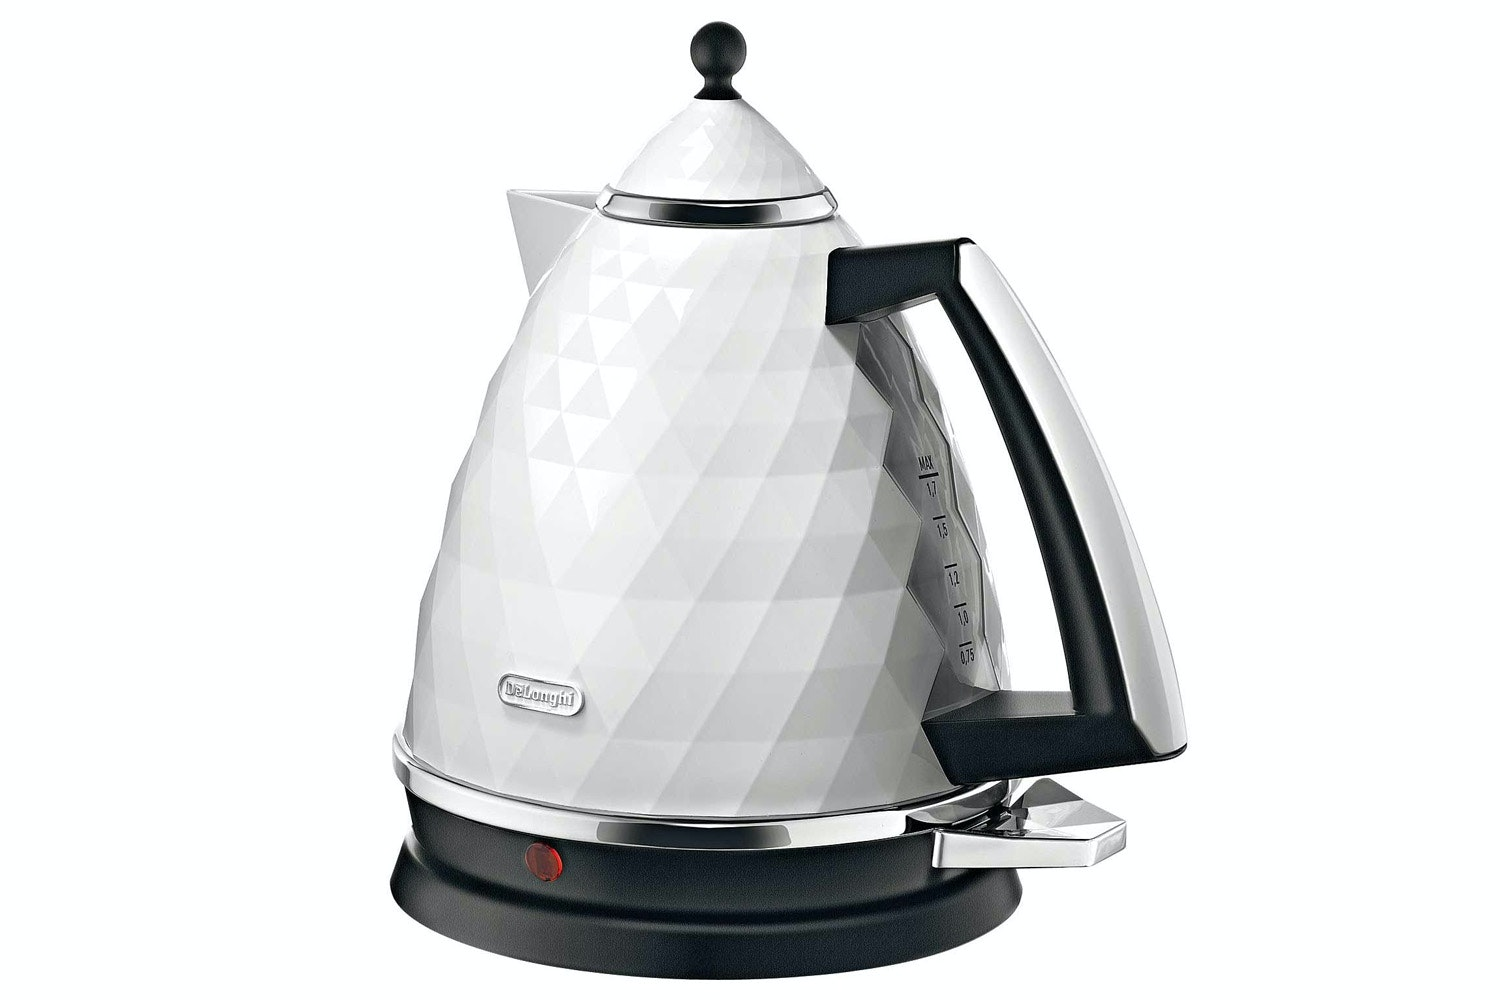 DeLonghi 1.7L Brilliante Kettle | White